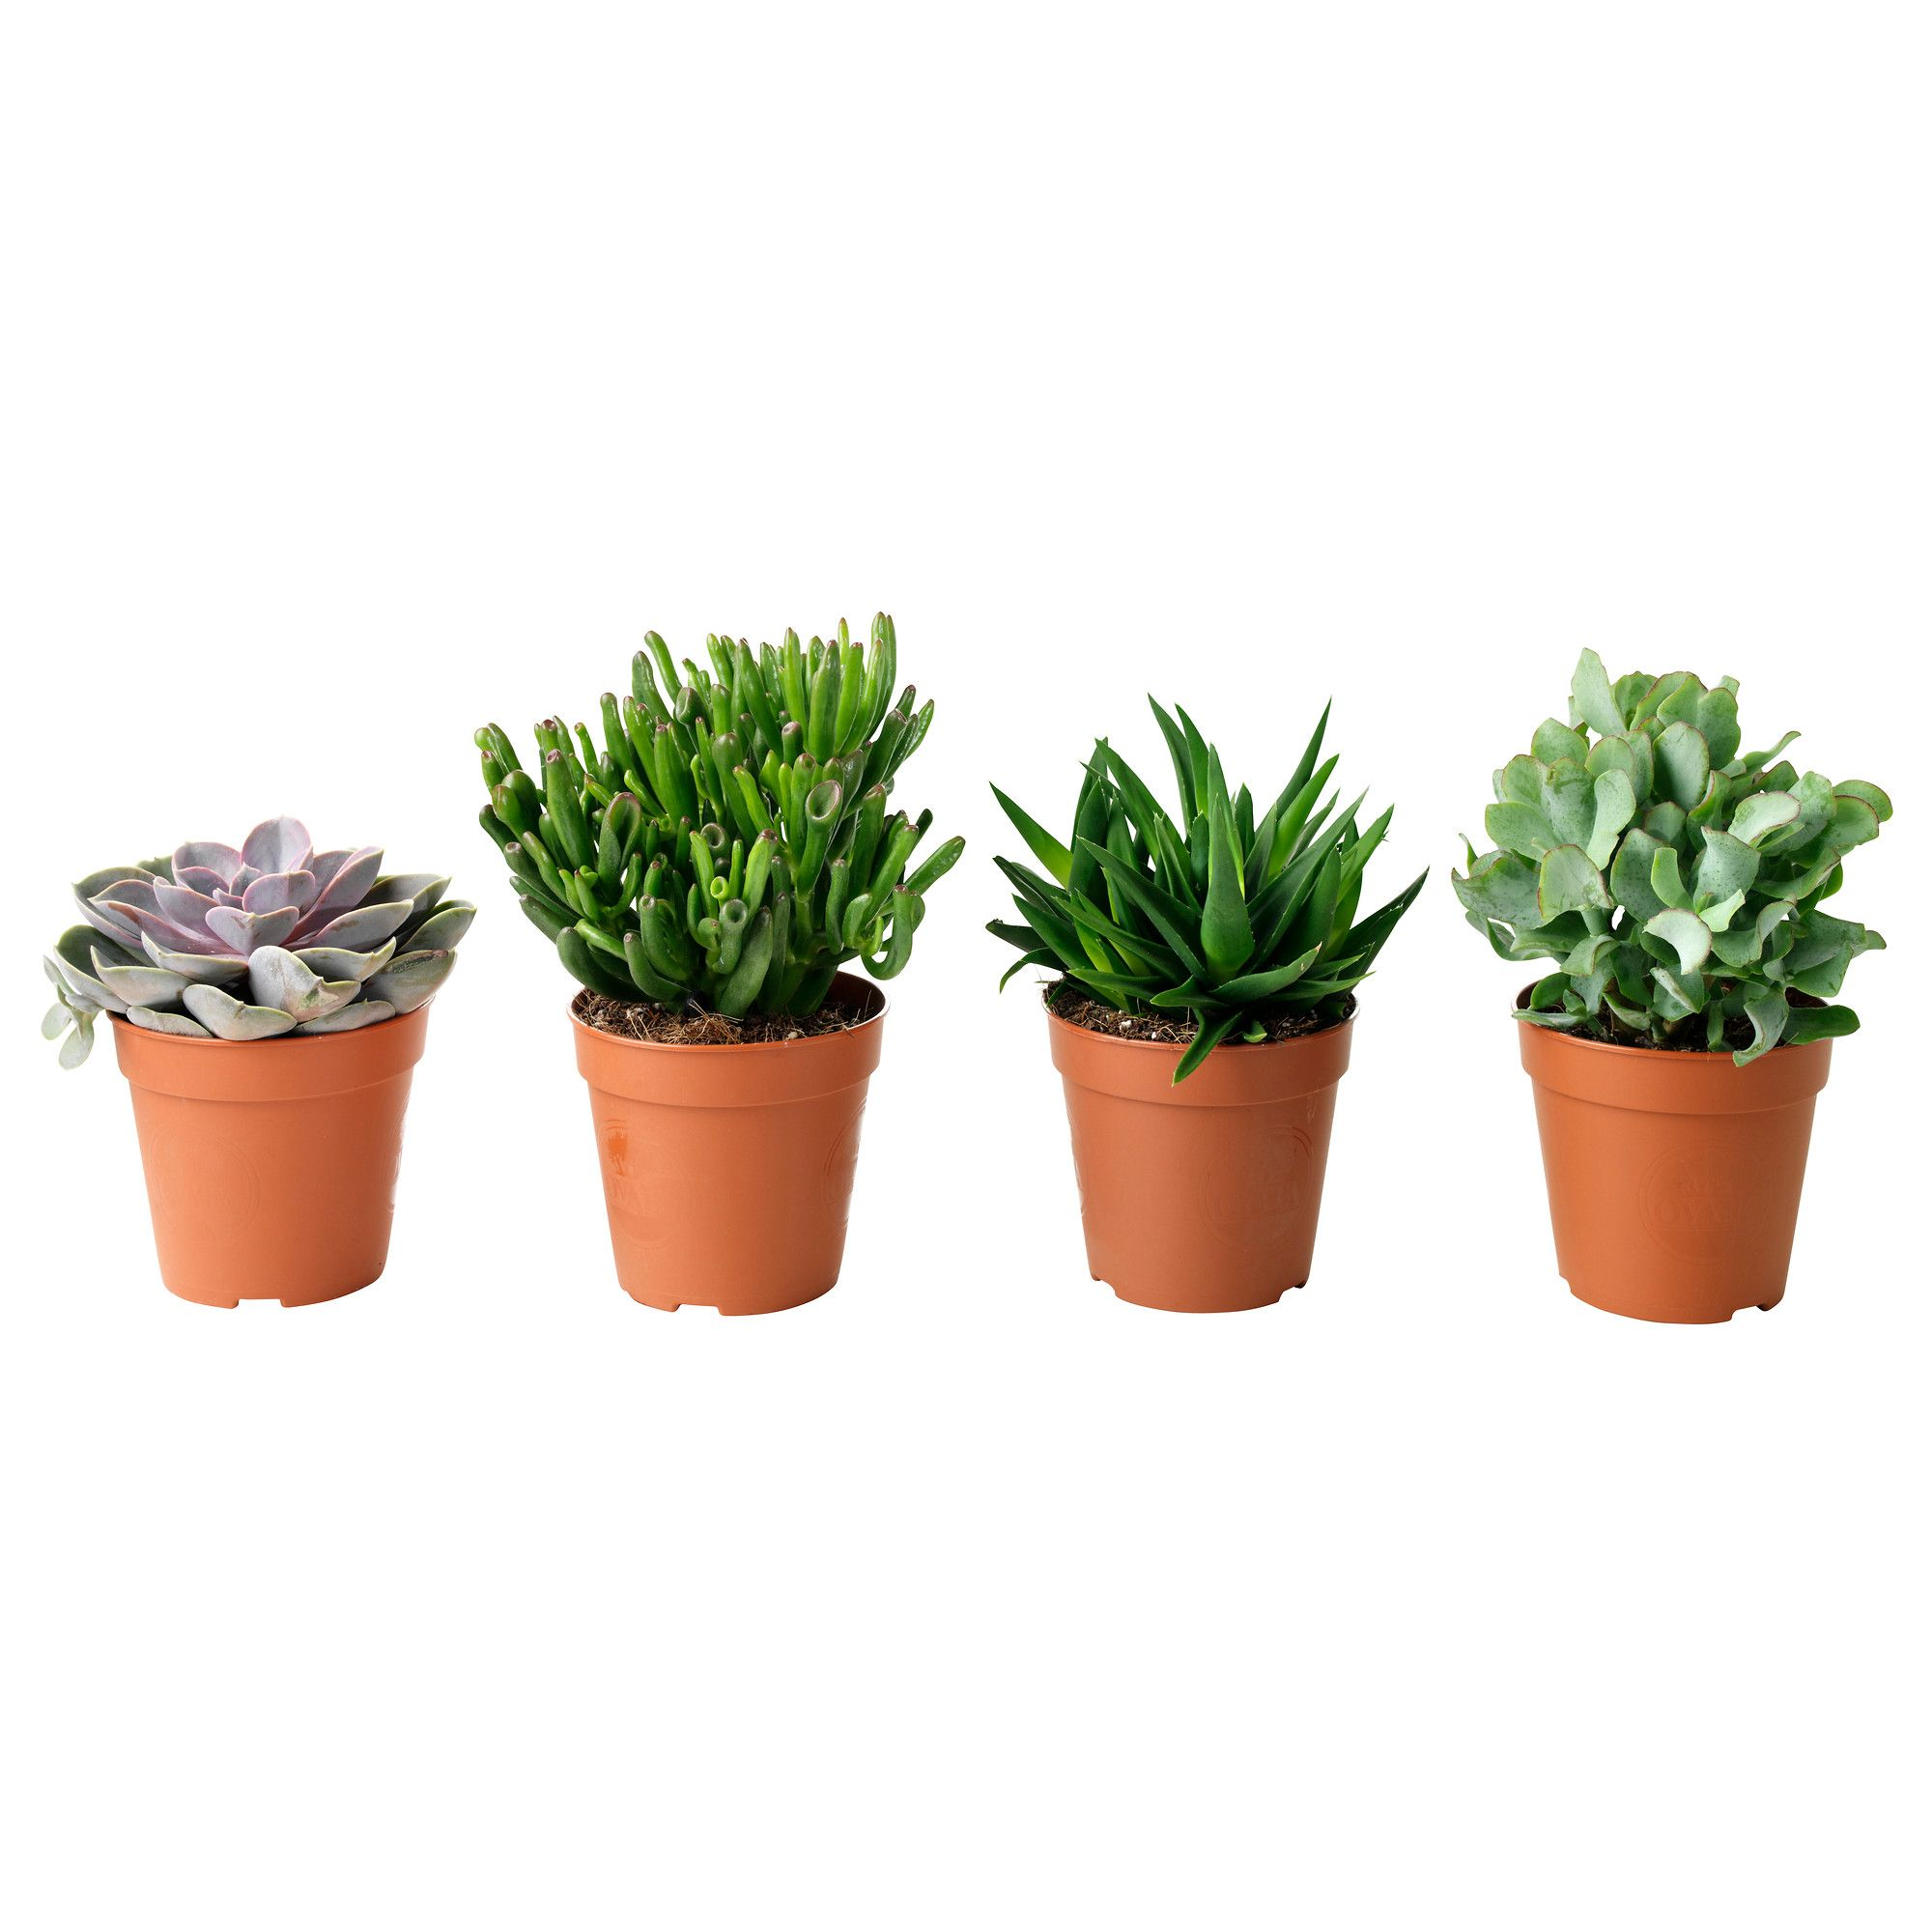 Small Household Plants Succulent Potted Plant Ikea Wedding Pinterest